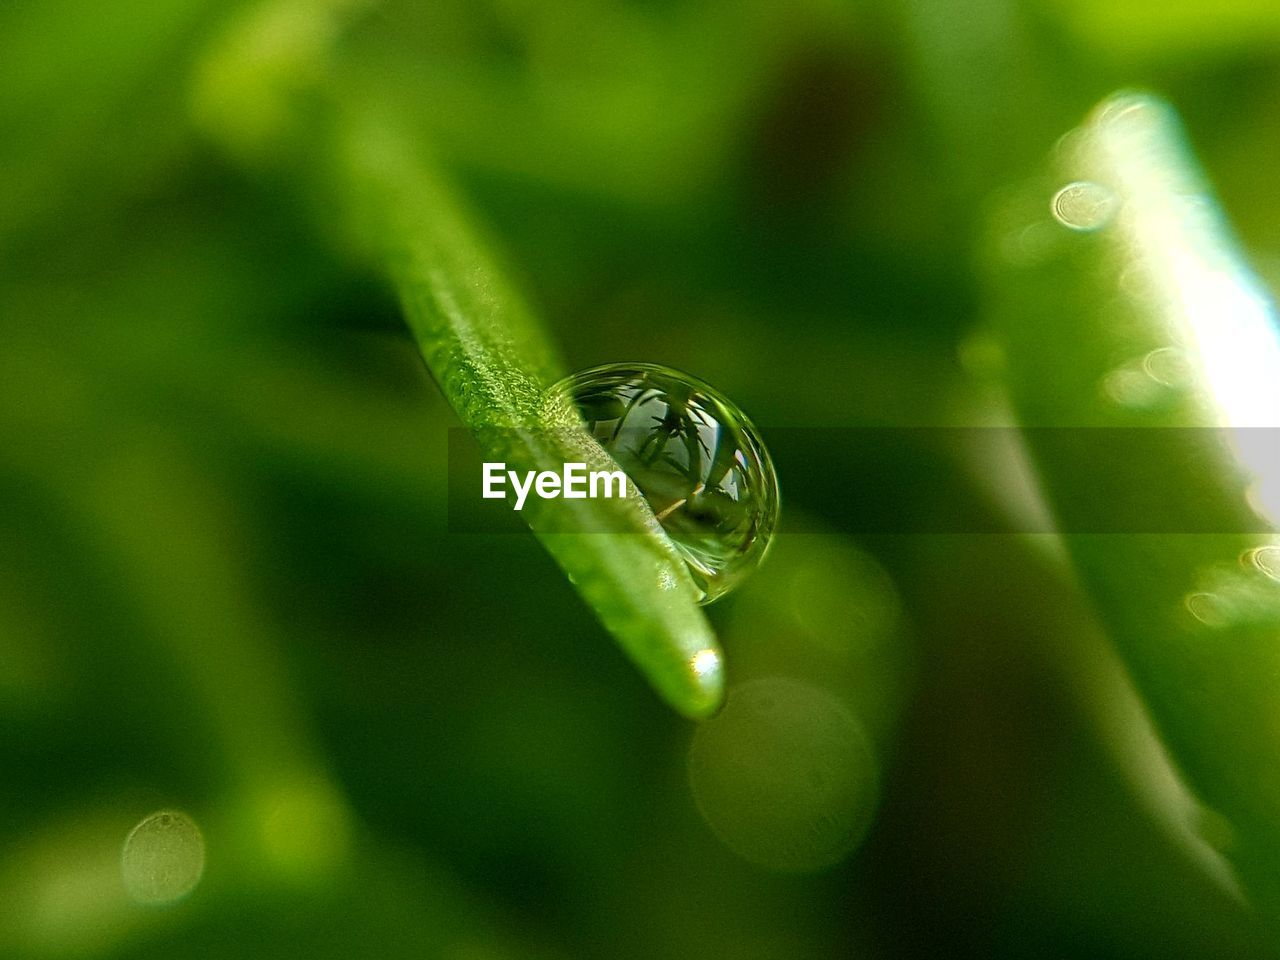 green color, plant, close-up, growth, leaf, selective focus, plant part, nature, animal wildlife, no people, one animal, beauty in nature, animals in the wild, drop, water, invertebrate, day, animal, animal themes, outdoors, dew, purity